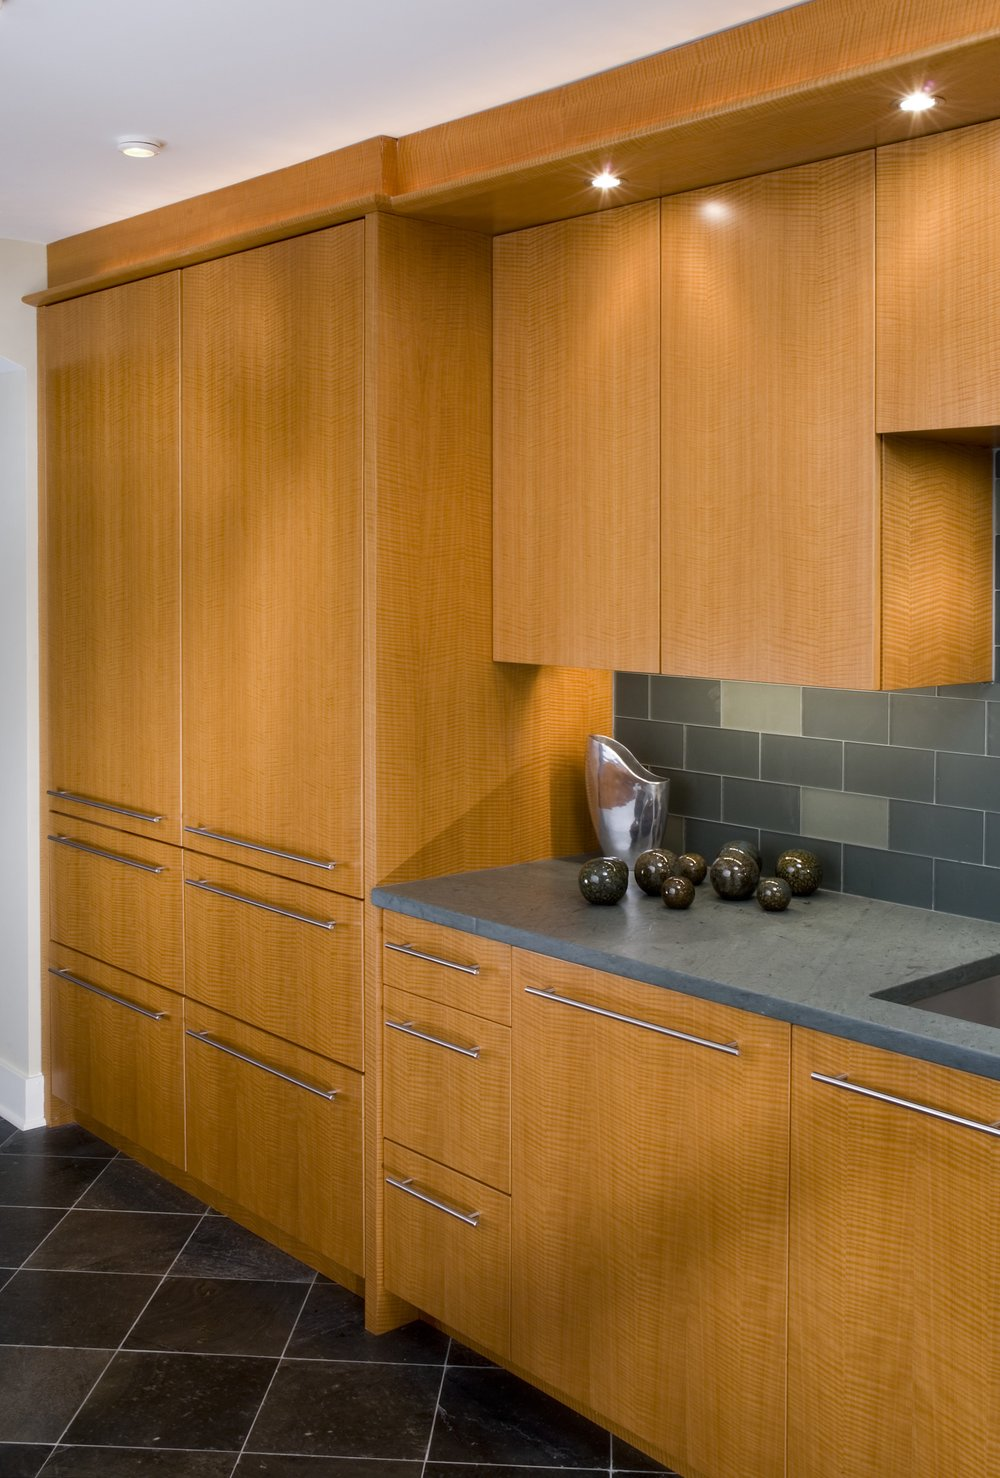 KBC_kitchen_bath_concepts_Kitchen_150.jpg